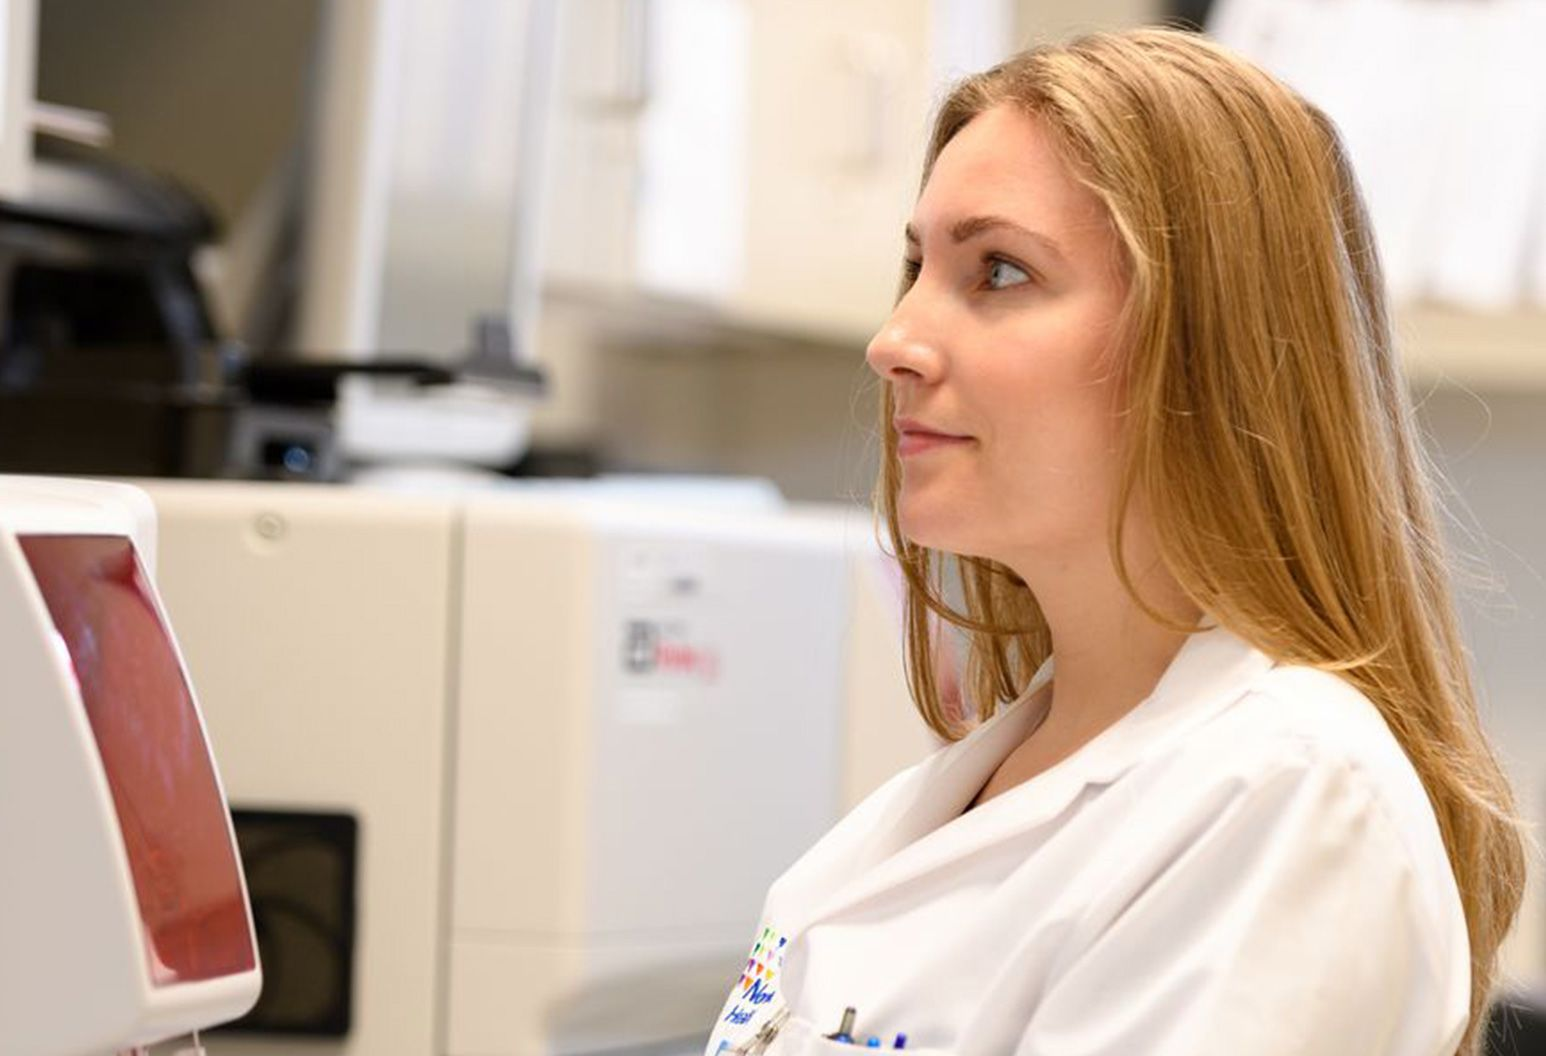 Female doctor wearing white lab coat is sitting at a desk in a research lab